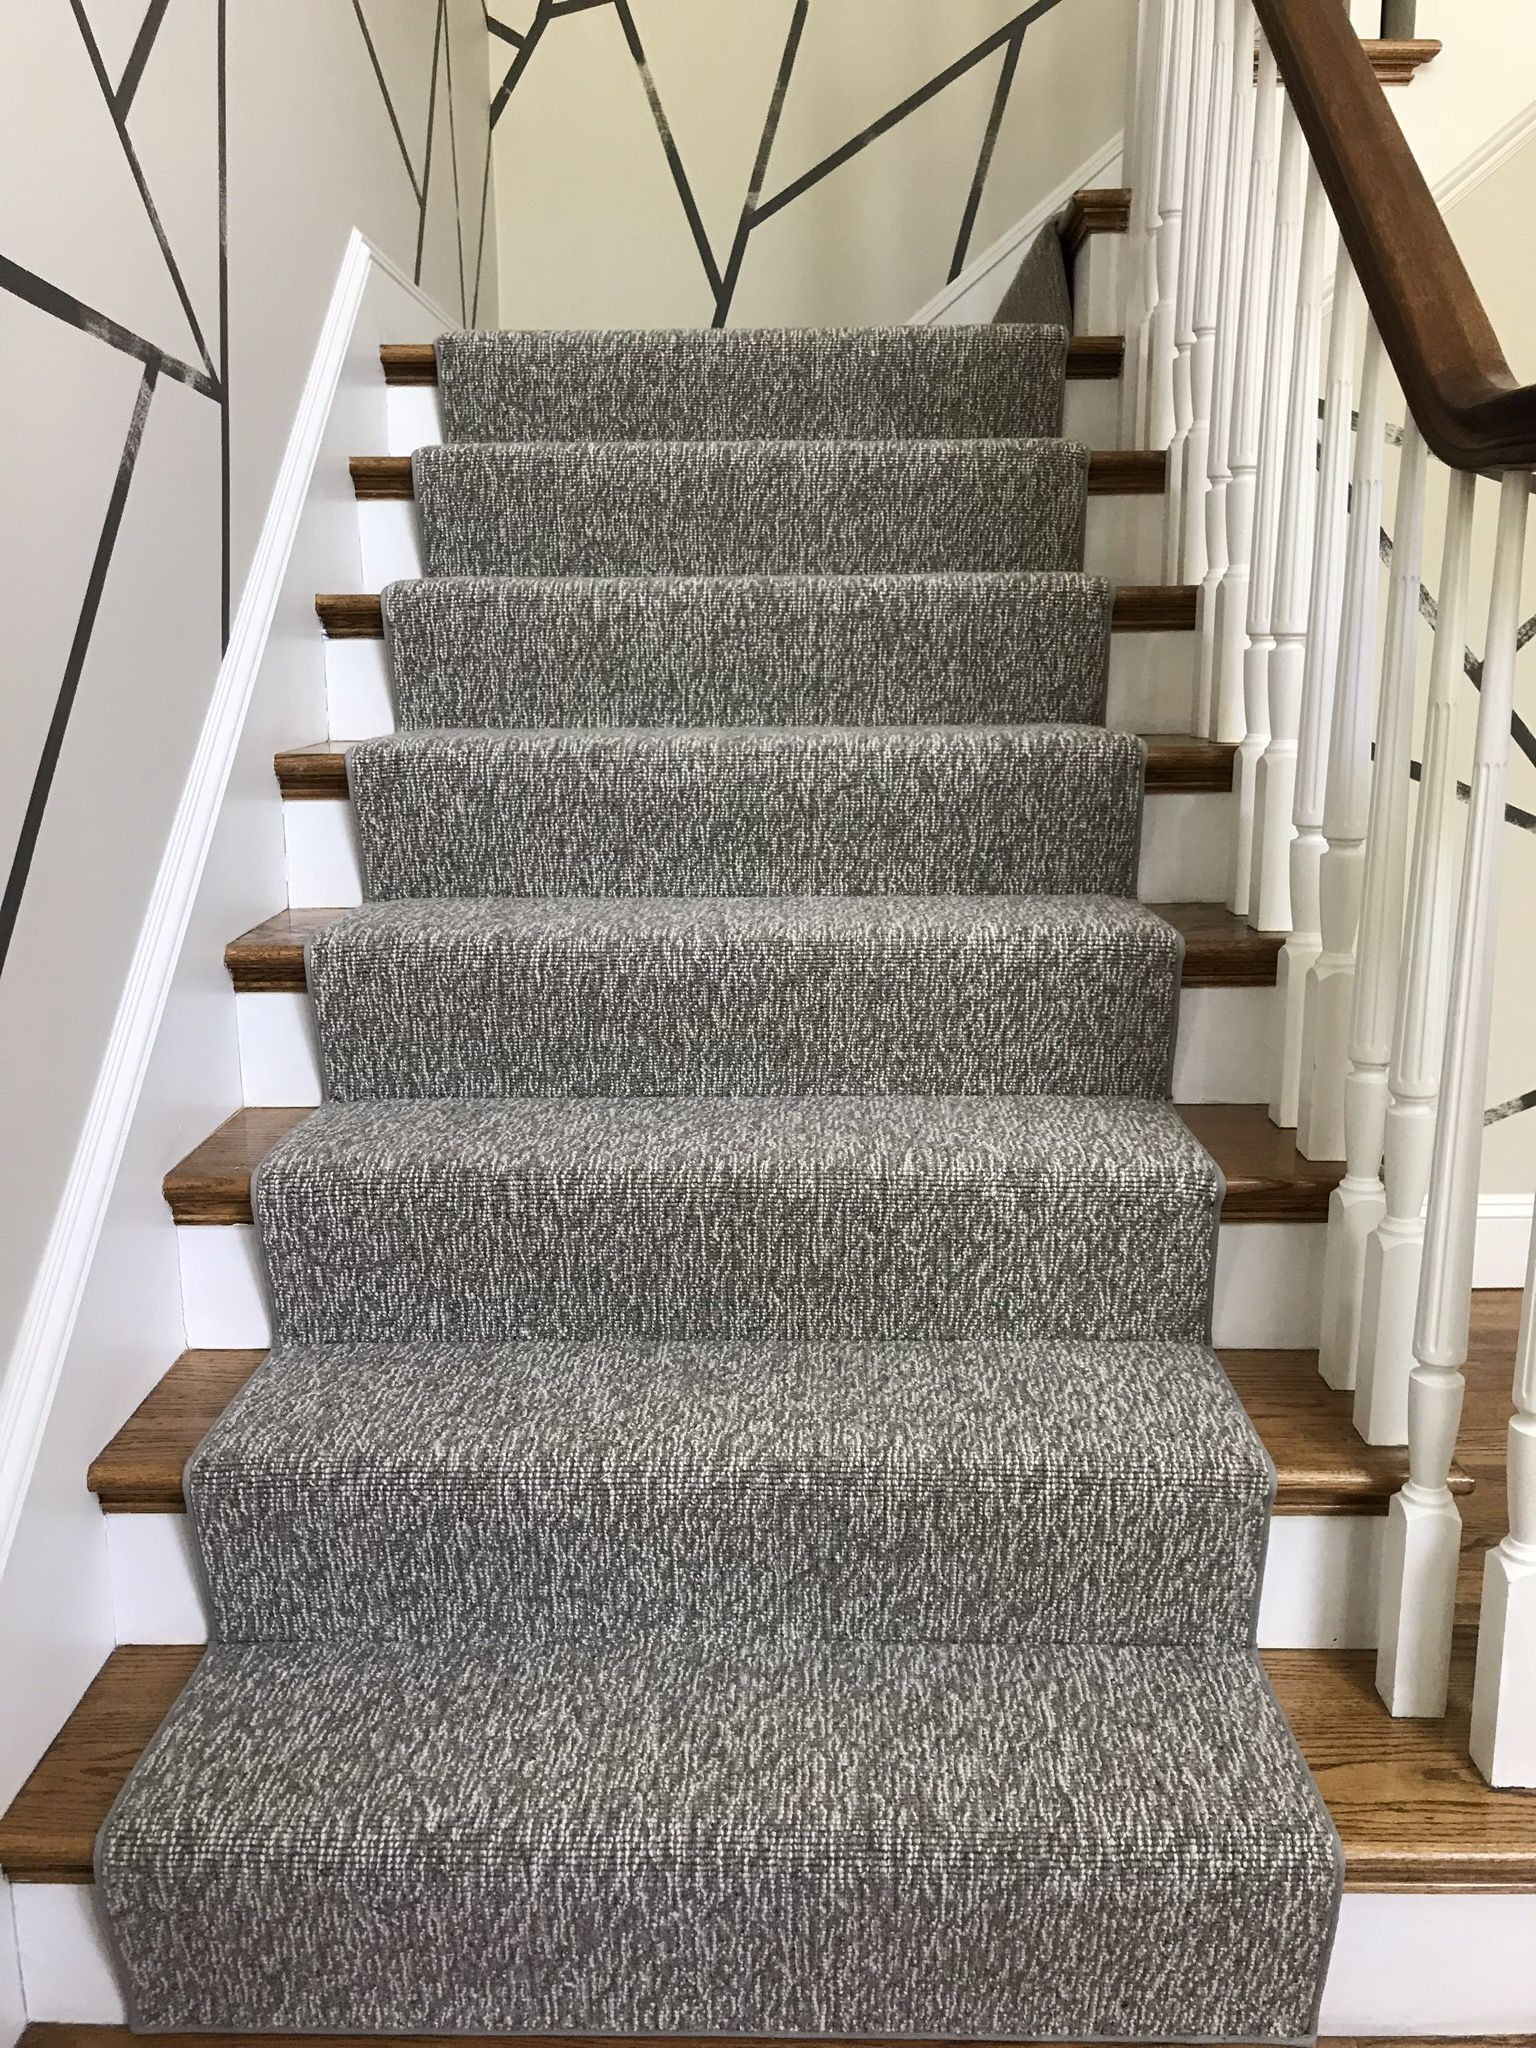 Delicieux Stairs   Stair Runner